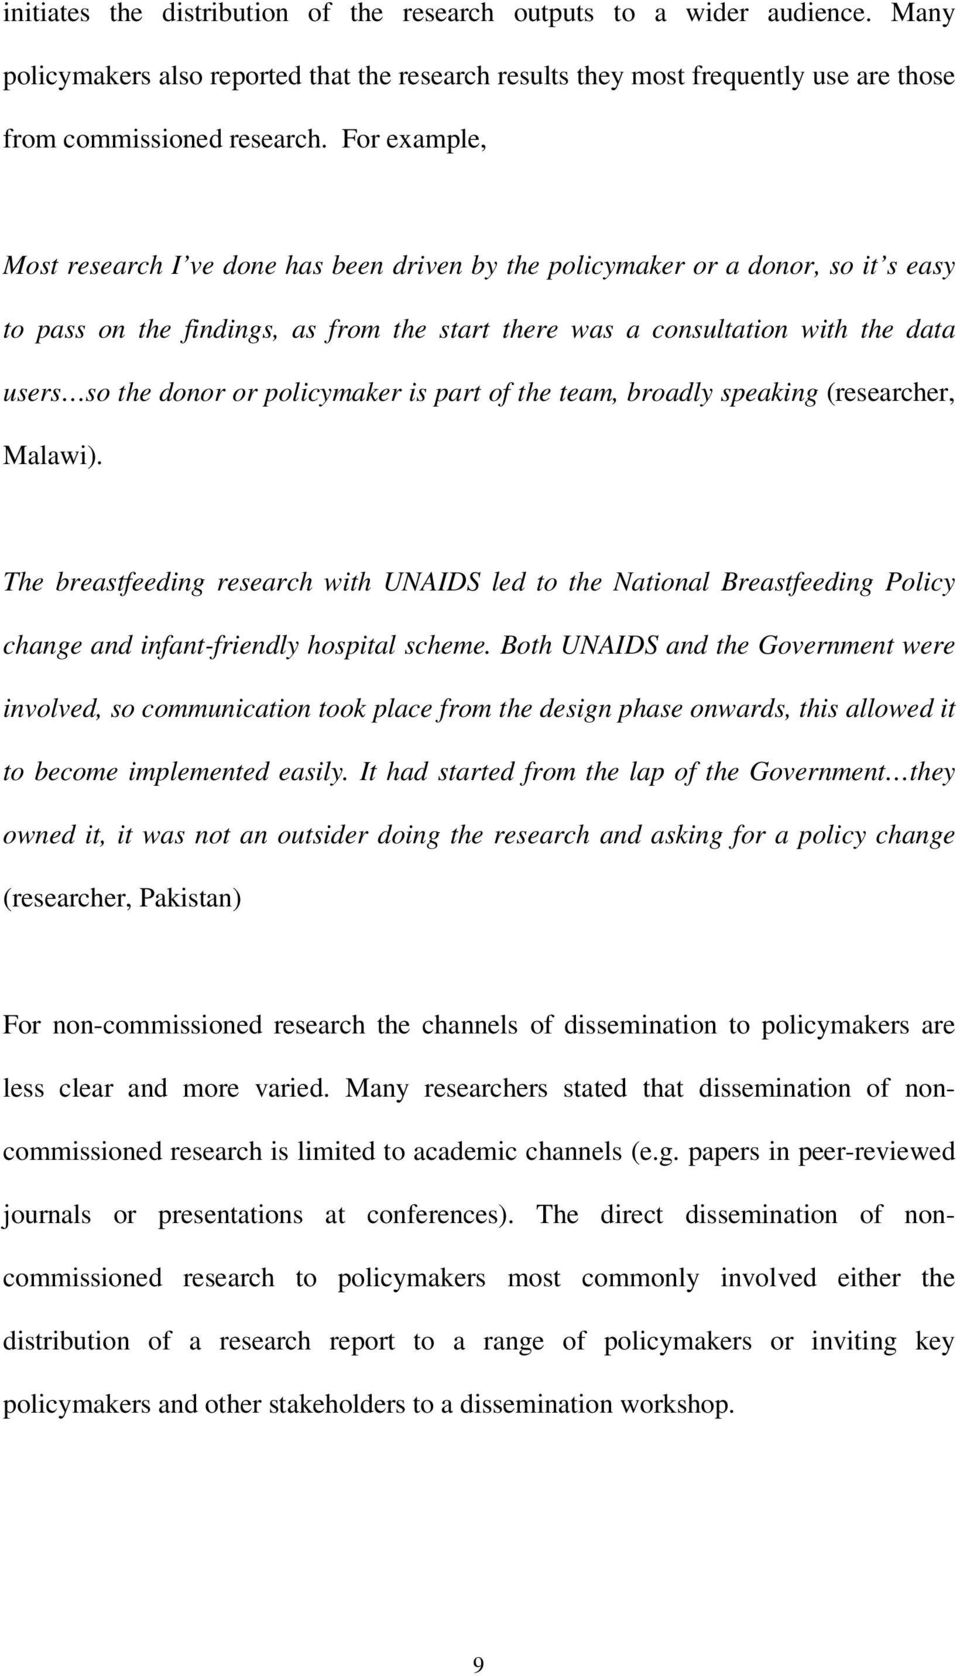 or policymaker is part of the team, broadly speaking (researcher, Malawi). The breastfeeding research with UNAIDS led to the National Breastfeeding Policy change and infant-friendly hospital scheme.